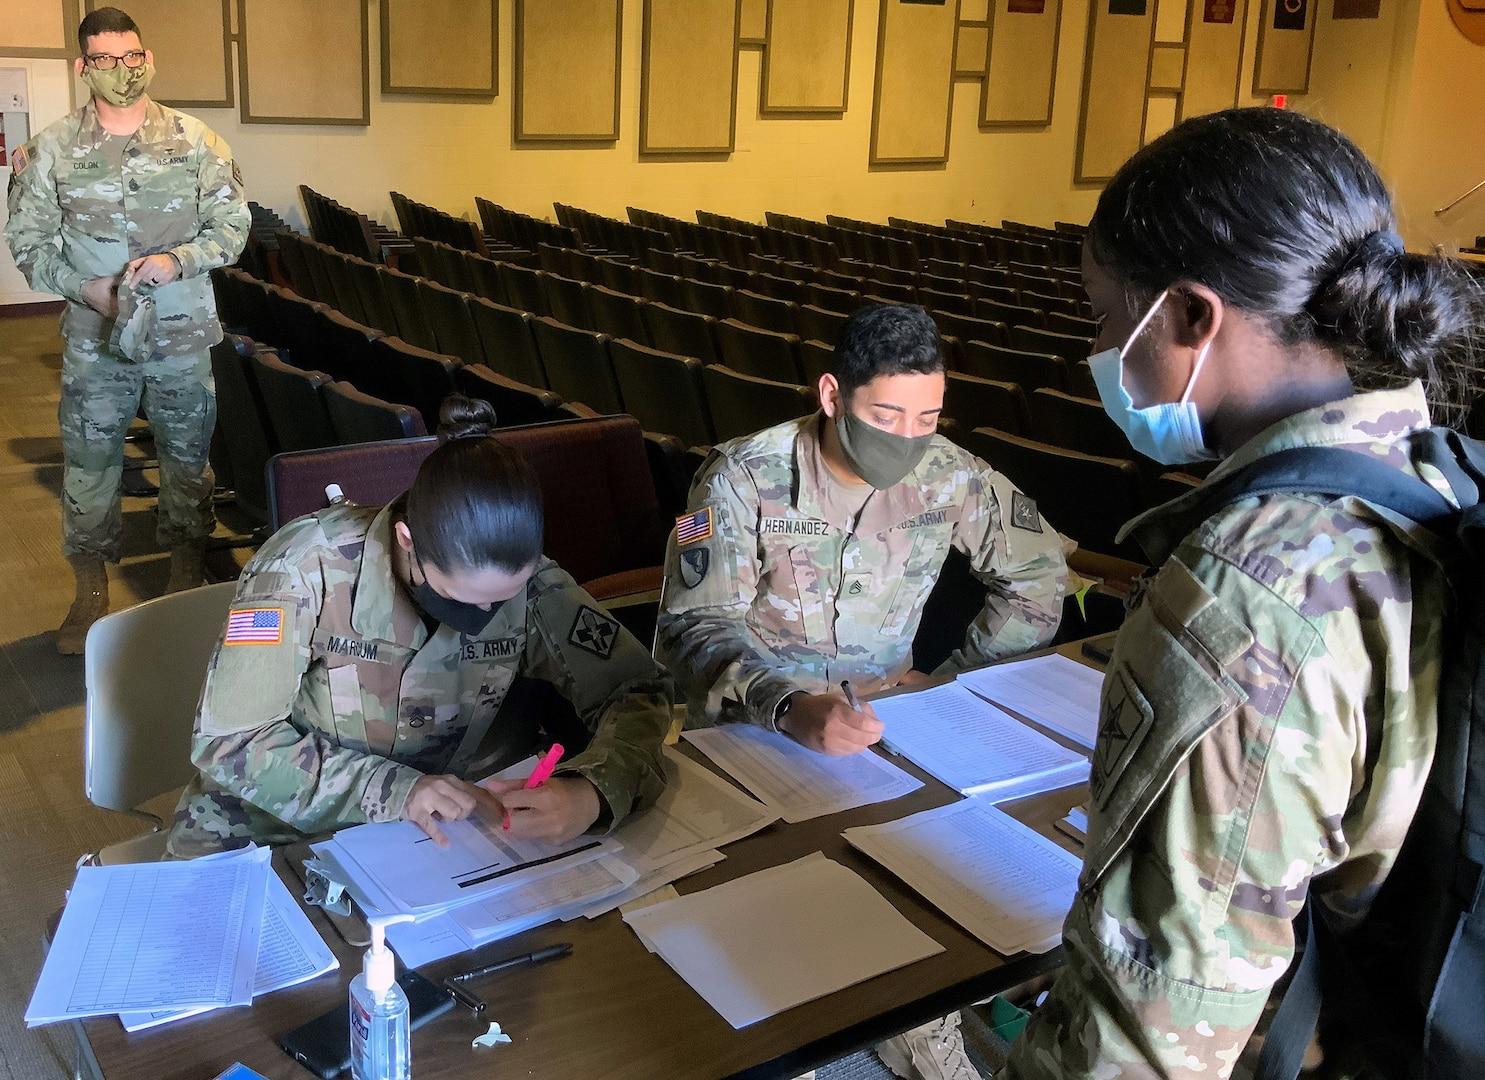 Pfc. Shavarianna Burton is greeted at the first station for Holiday Block Leave reintegration screening as Lt. Col. Nadia M Pearson, MEDCoE command surgeon and Command Sgt. Major Gilberto Colon, 32nd Medical Brigade Command Sergeant Major, look on.